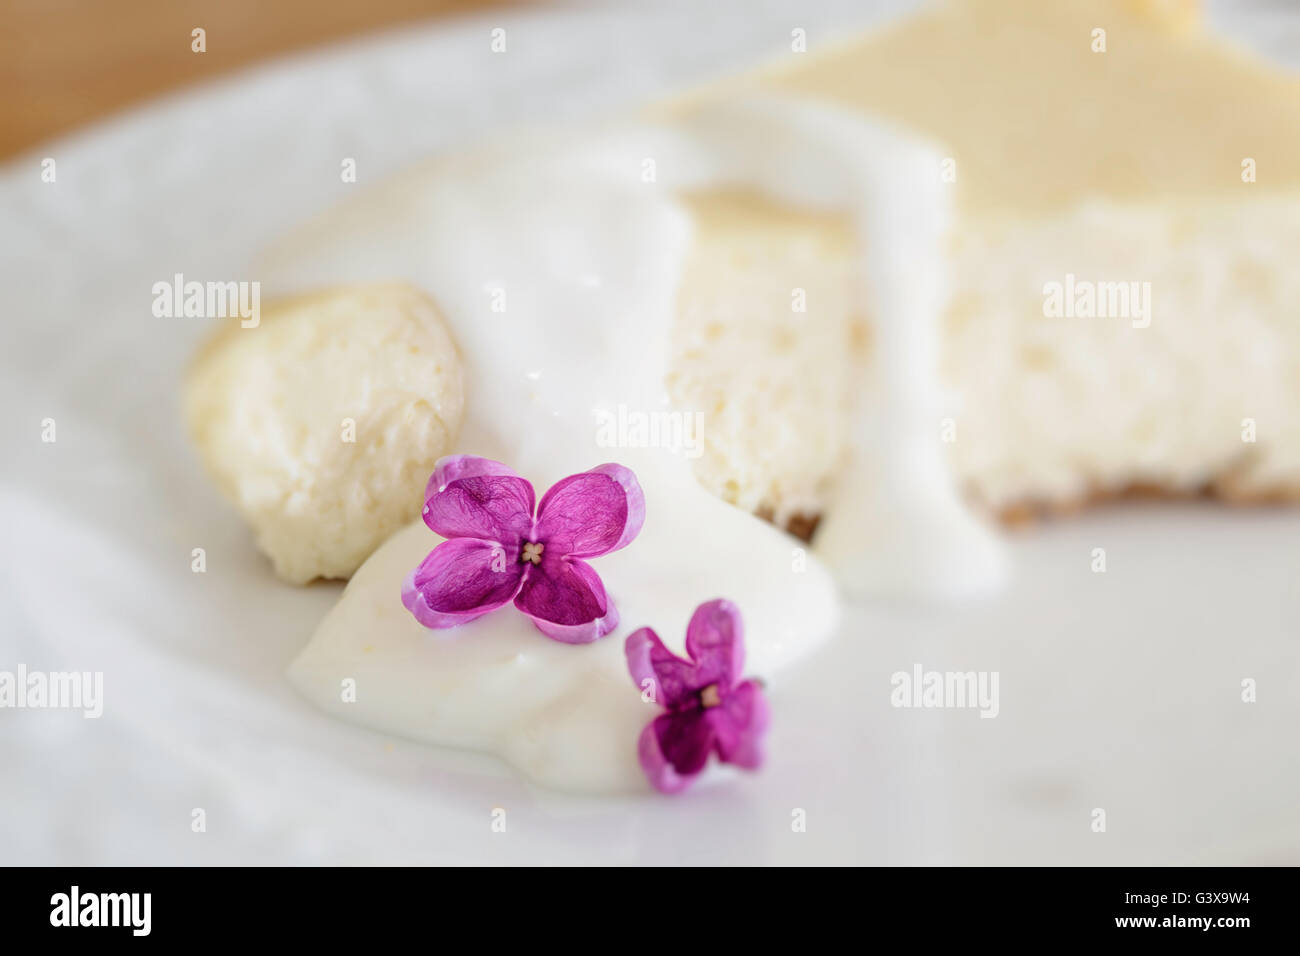 Lemon cheesecake decorated with individual lilac blooms. Intentional shallow depth of field with focus on the lilac - Stock Image